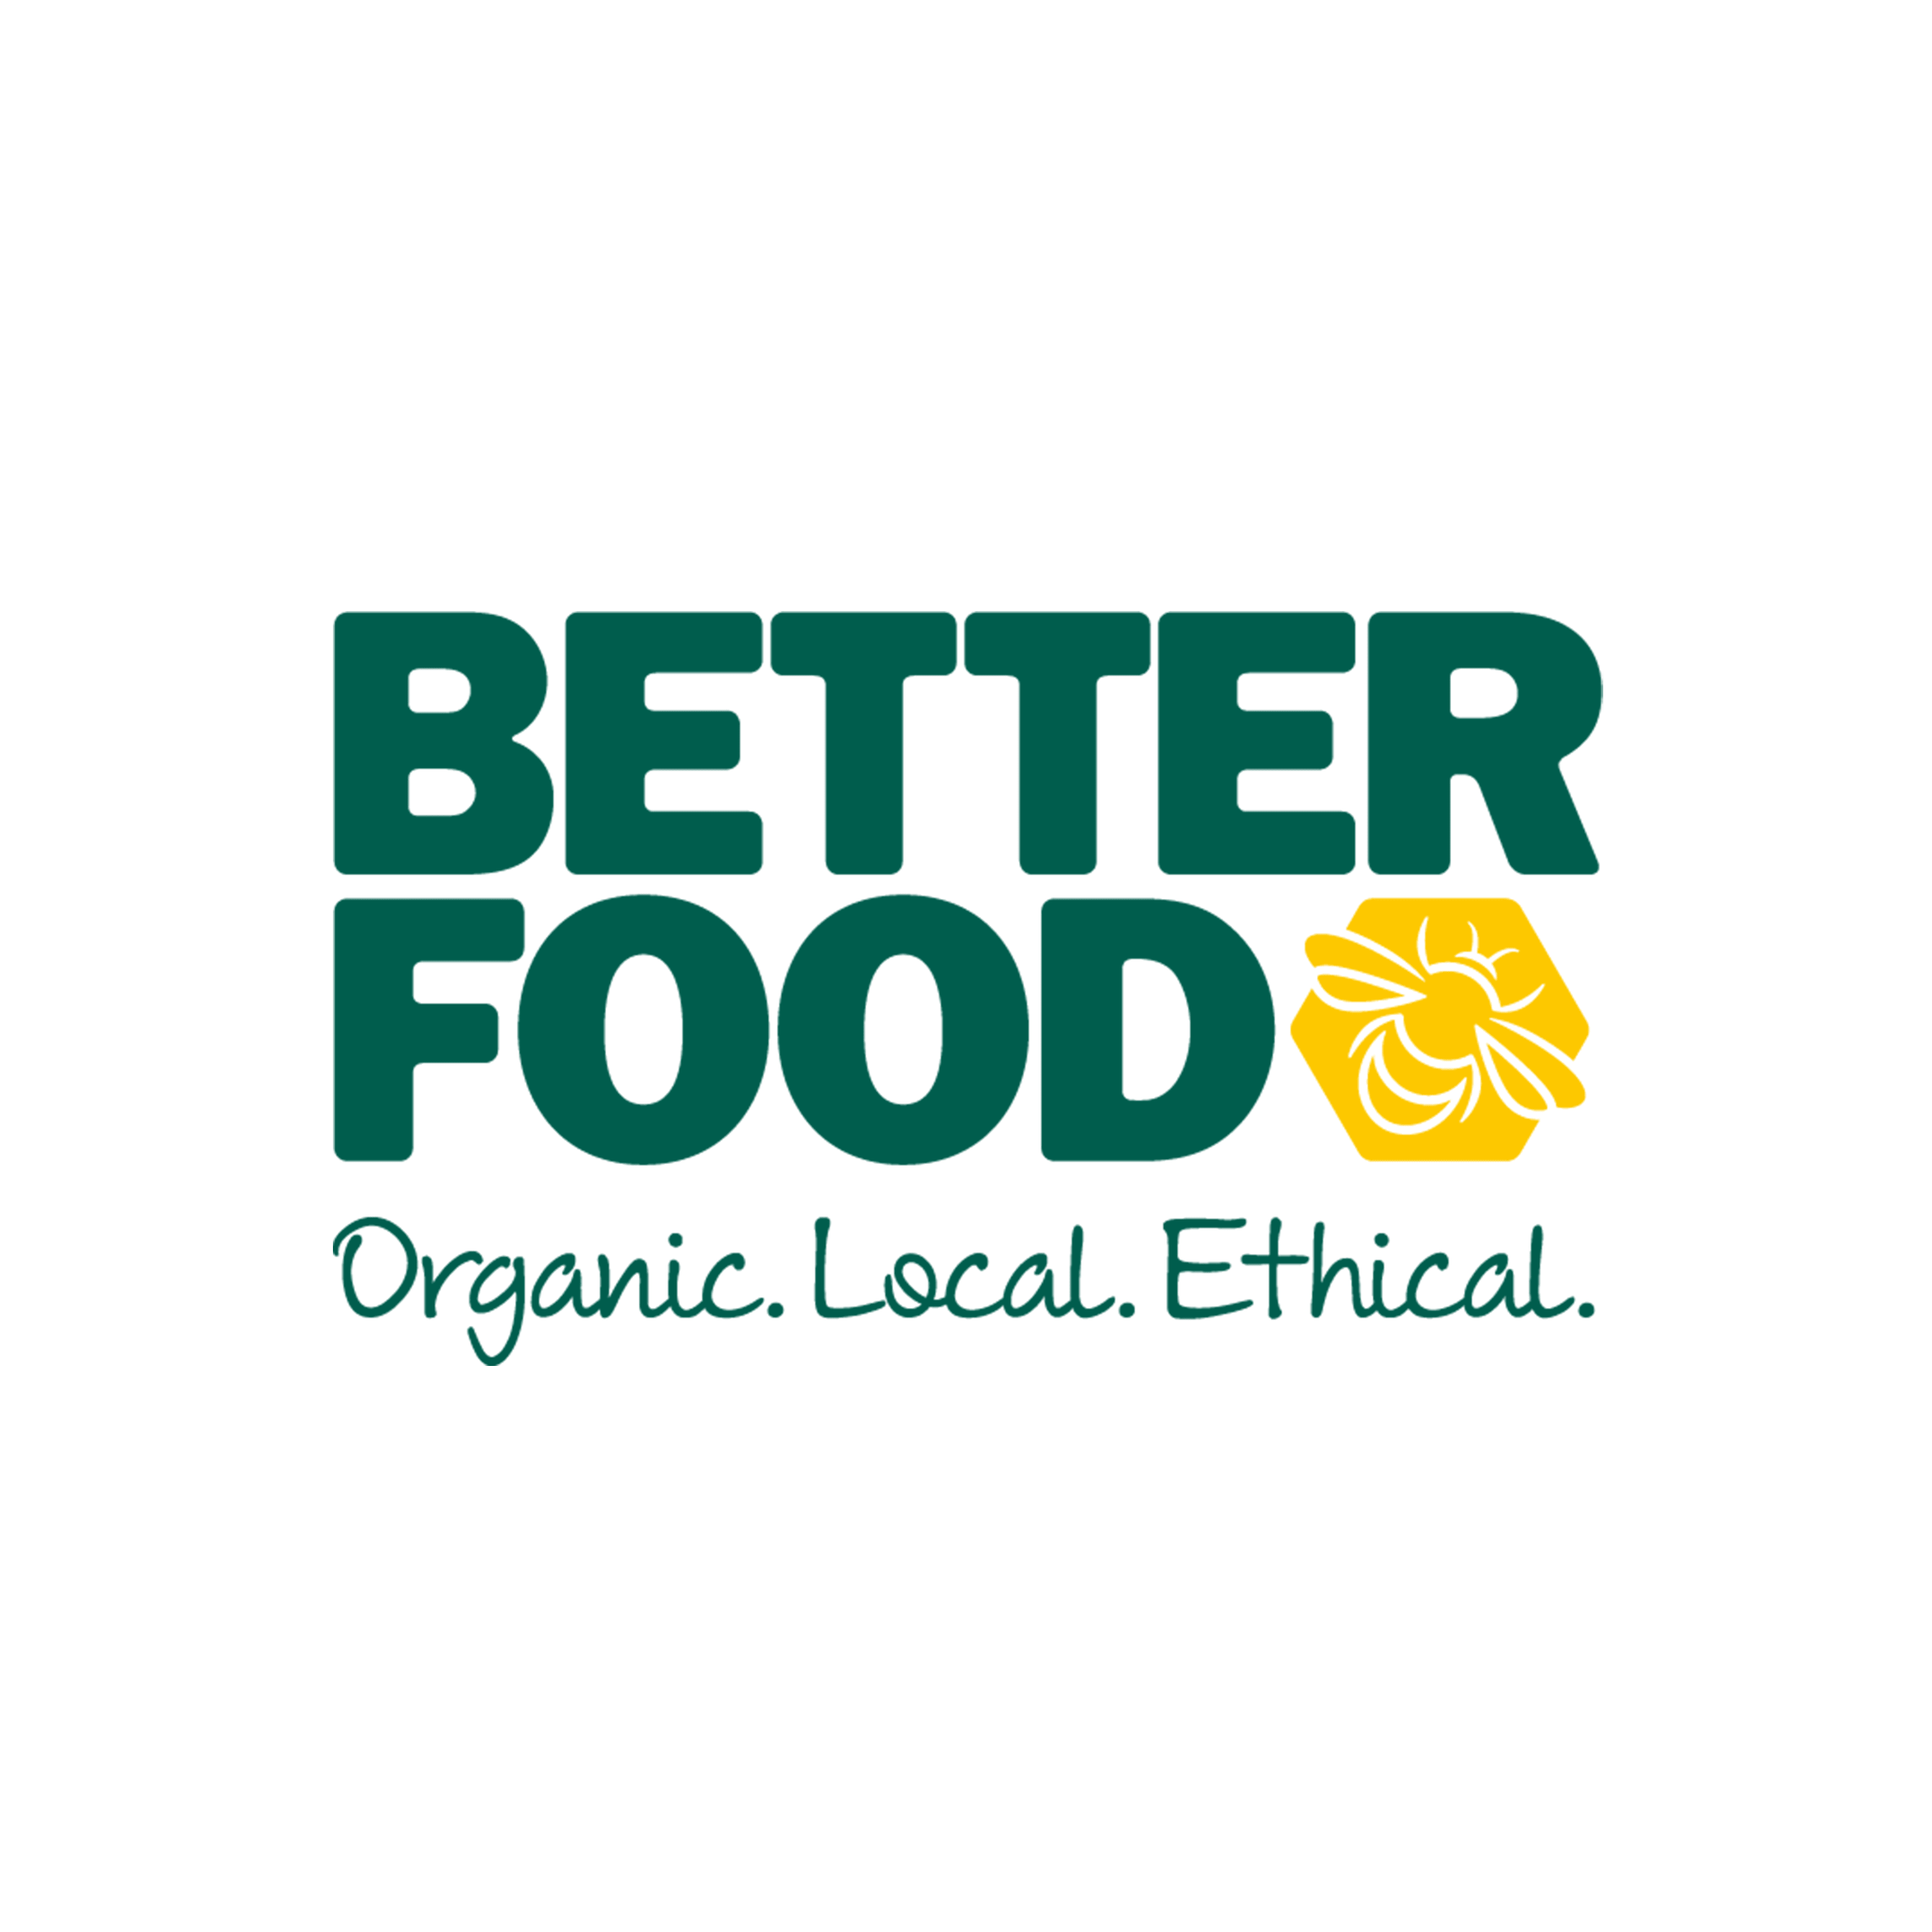 Better-food logo